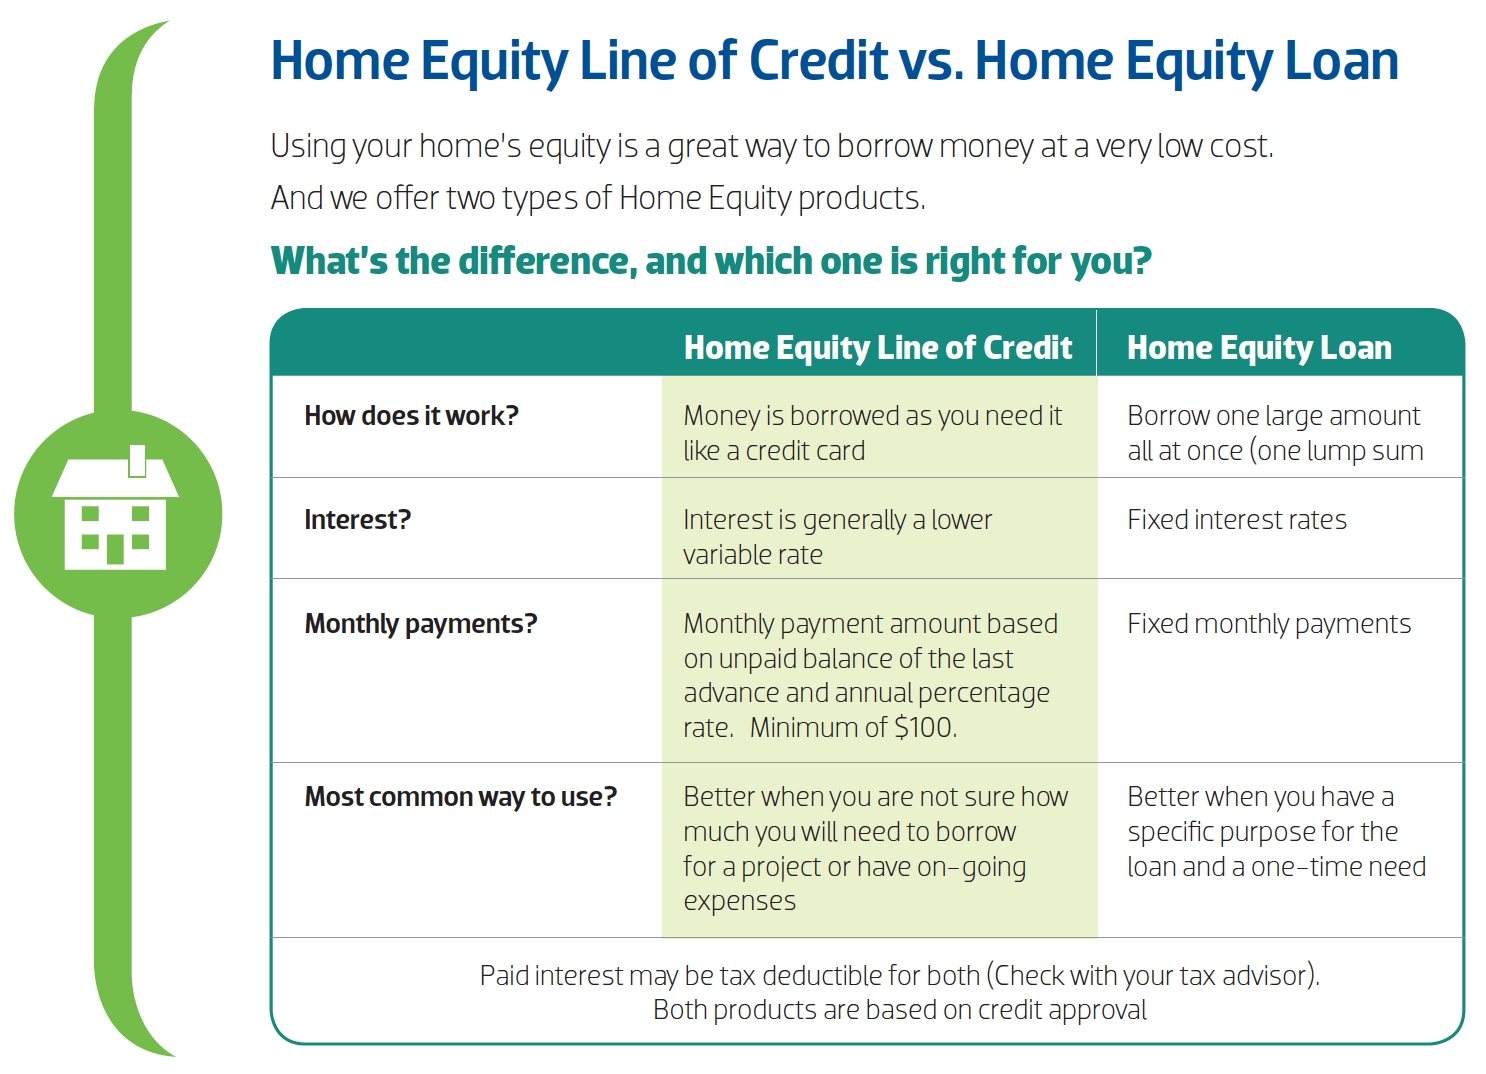 10 Spectacular Are Home Equity Loans A Good Idea home equity community 1st credit union 1 2020